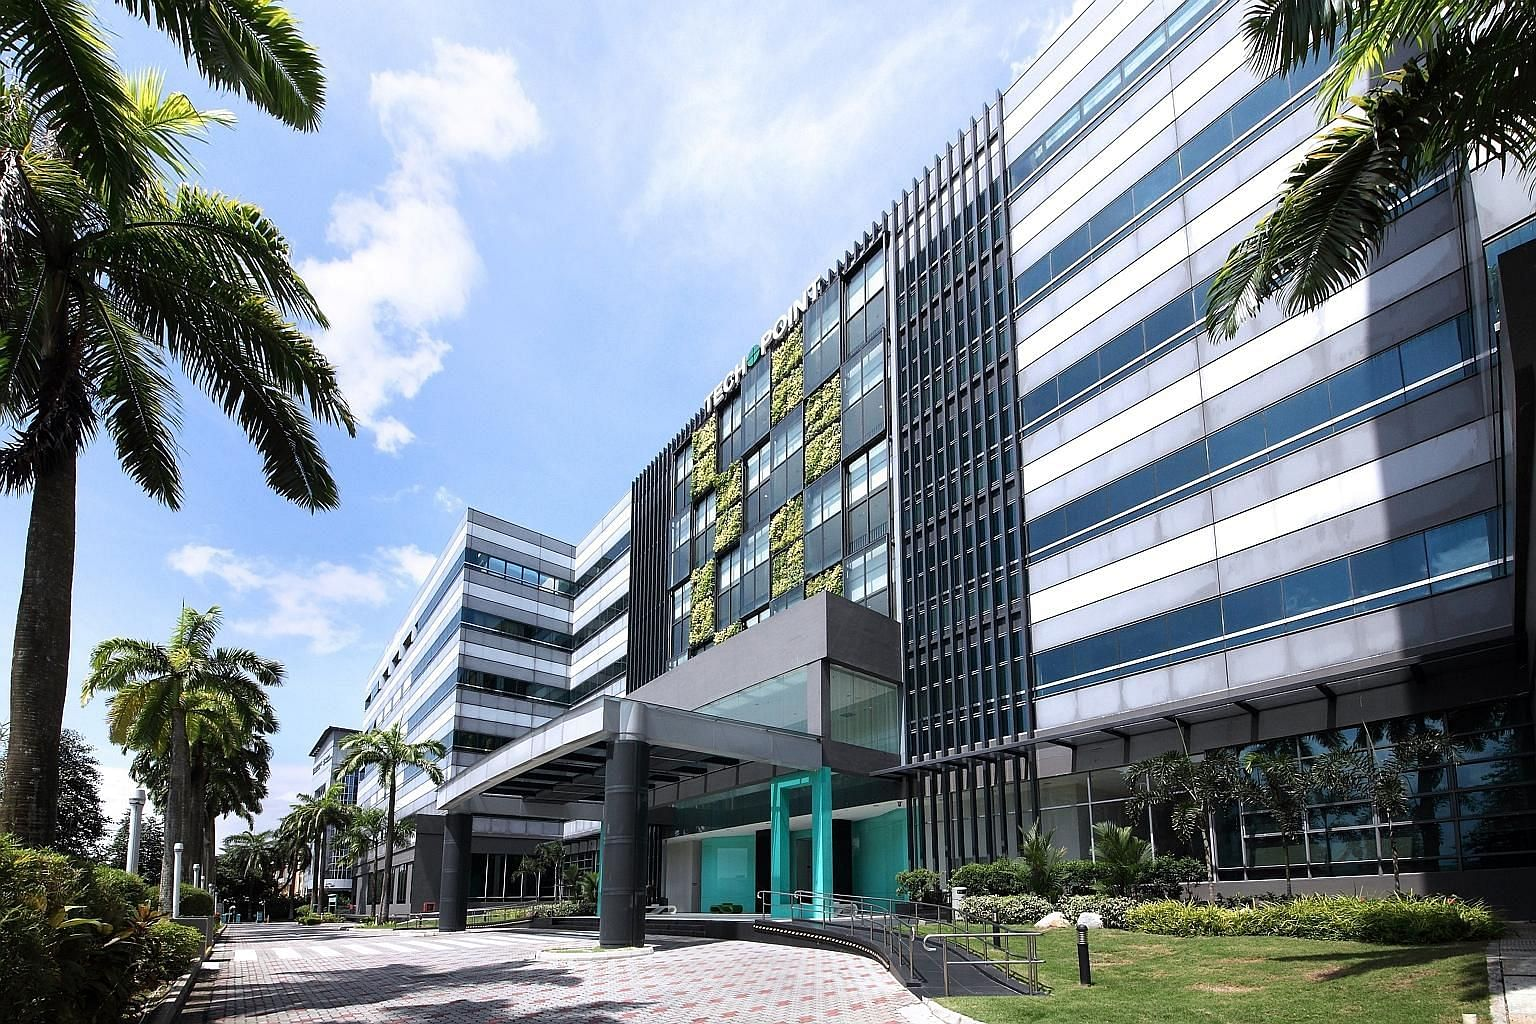 The solar panels will be installed on the rooftops of six CapitaLand properties - Techpoint (left), 1 Changi Business Park Avenue 1, 9 Changi South Street 3, 2 Senoko South Road, 40 Penjuru Lane and LogisTech. PHOTO: CAPITALAND